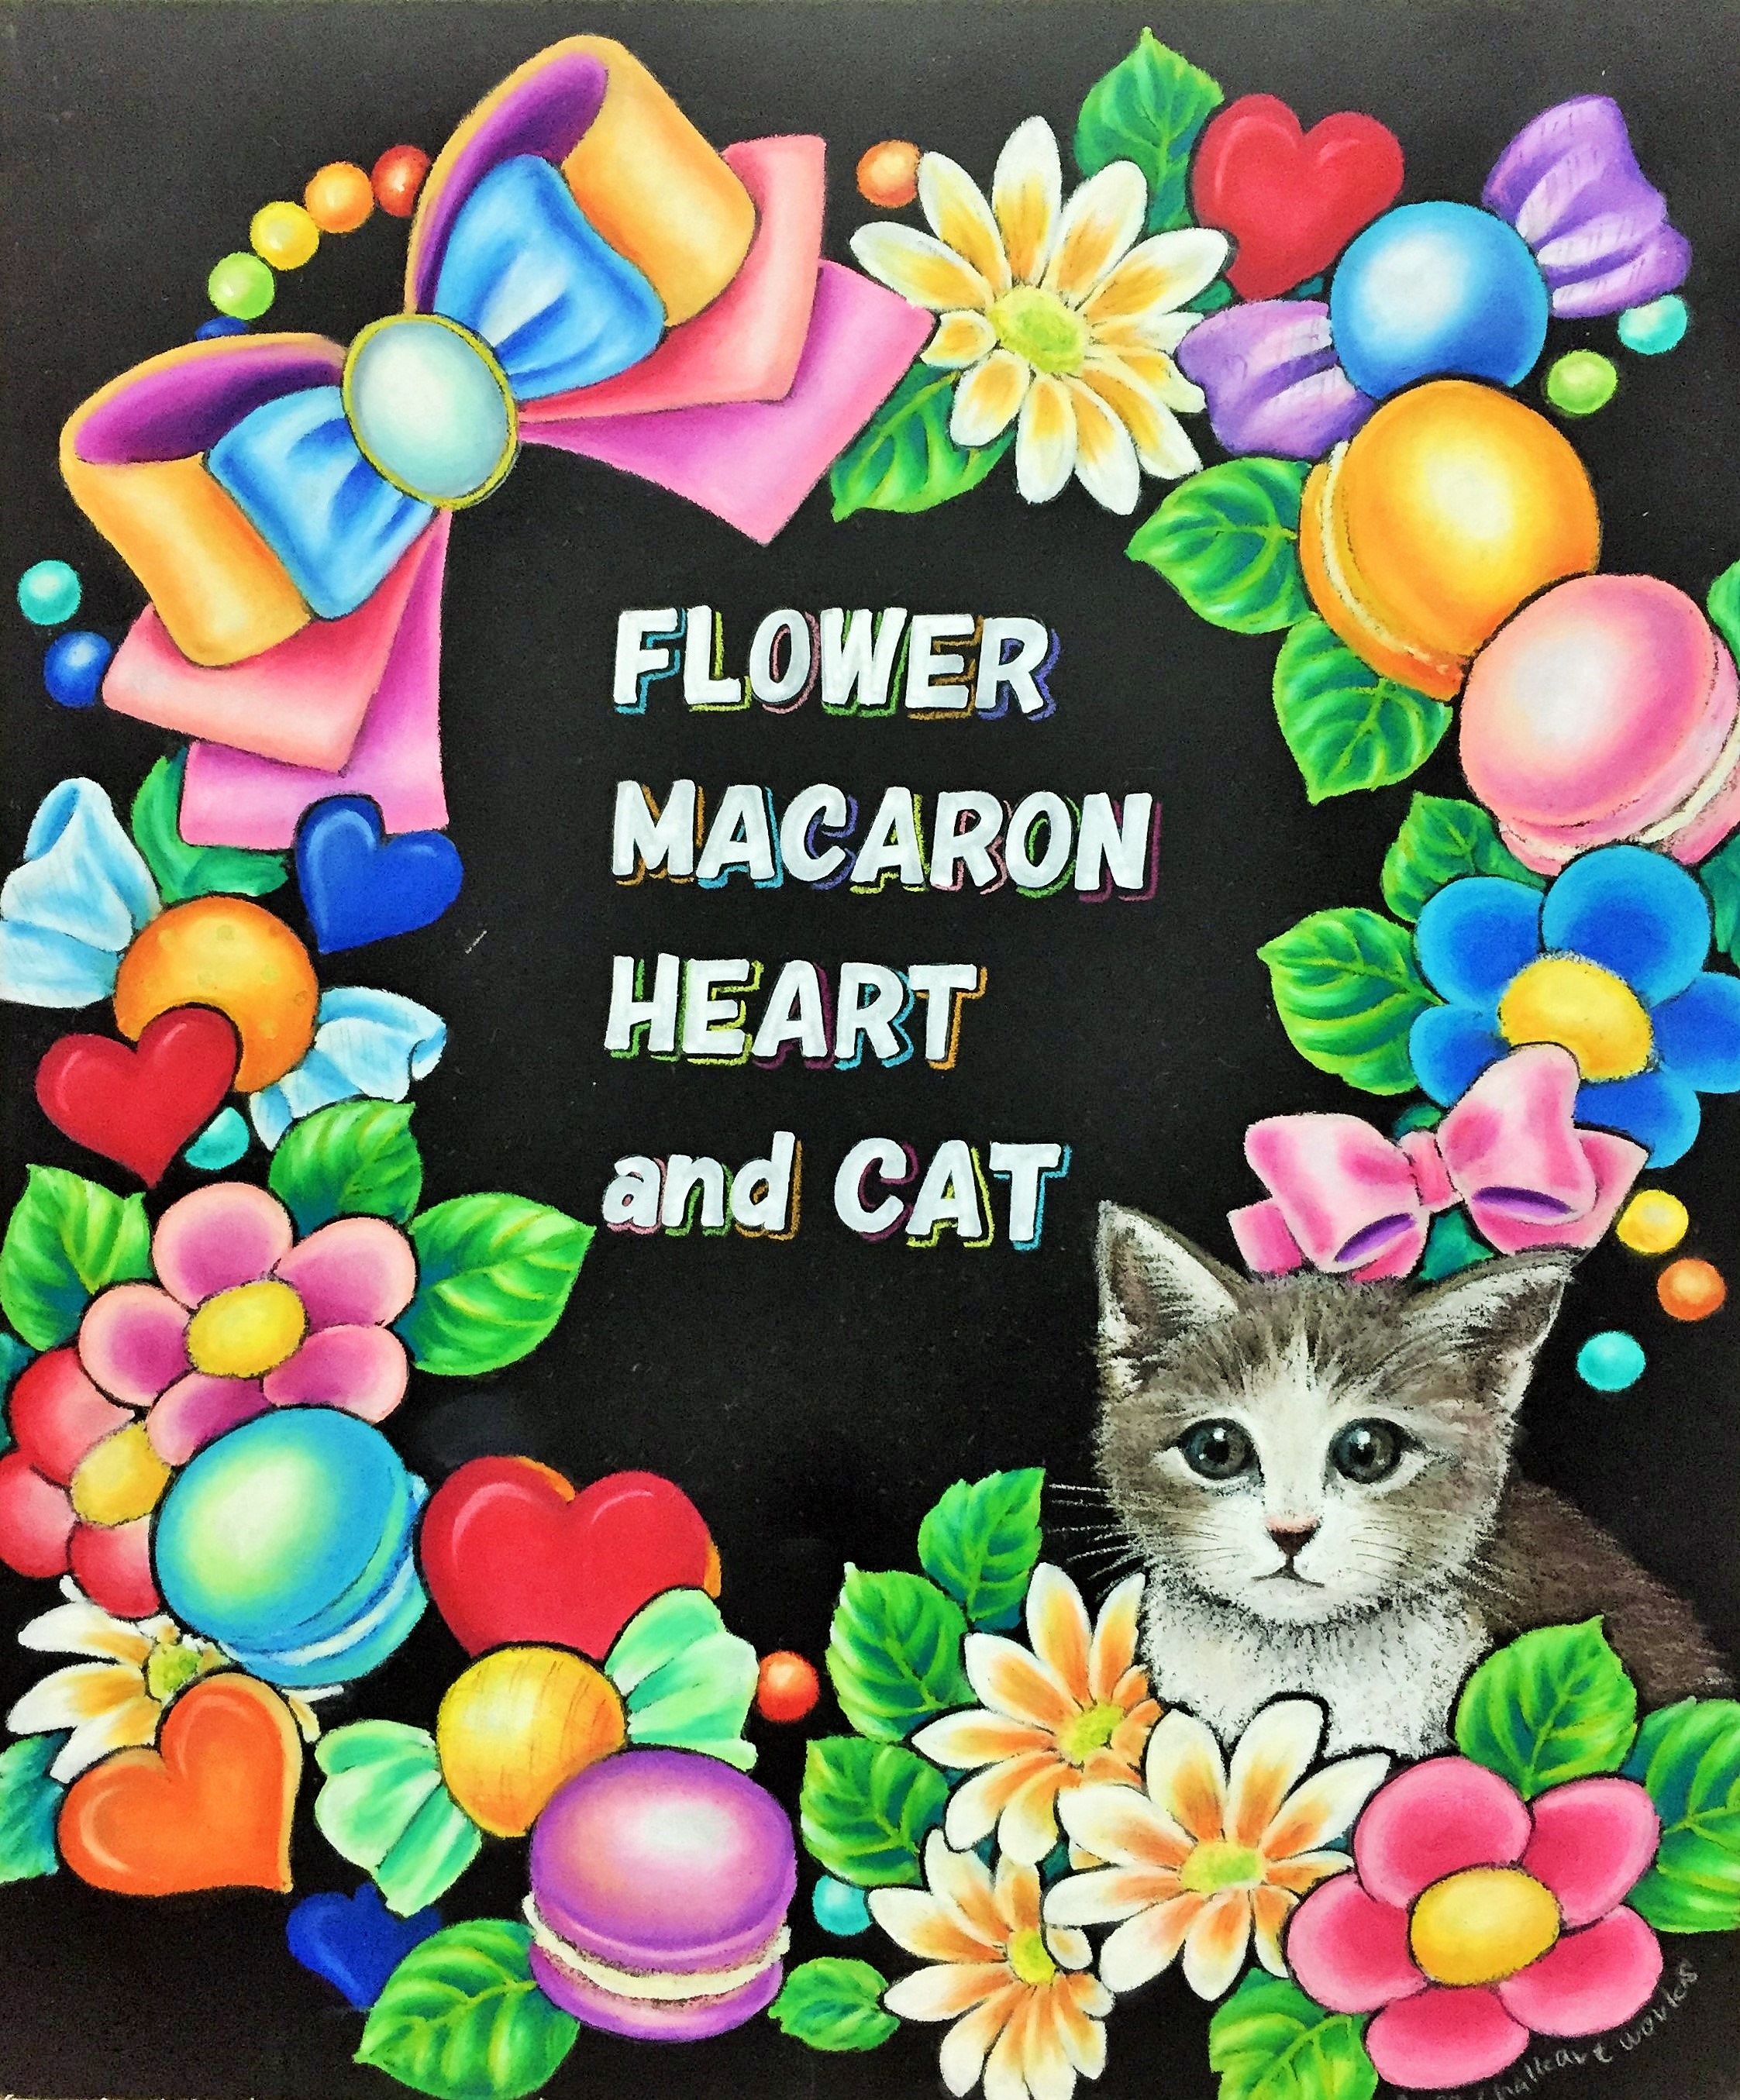 Flower Macaron Heart and Cat